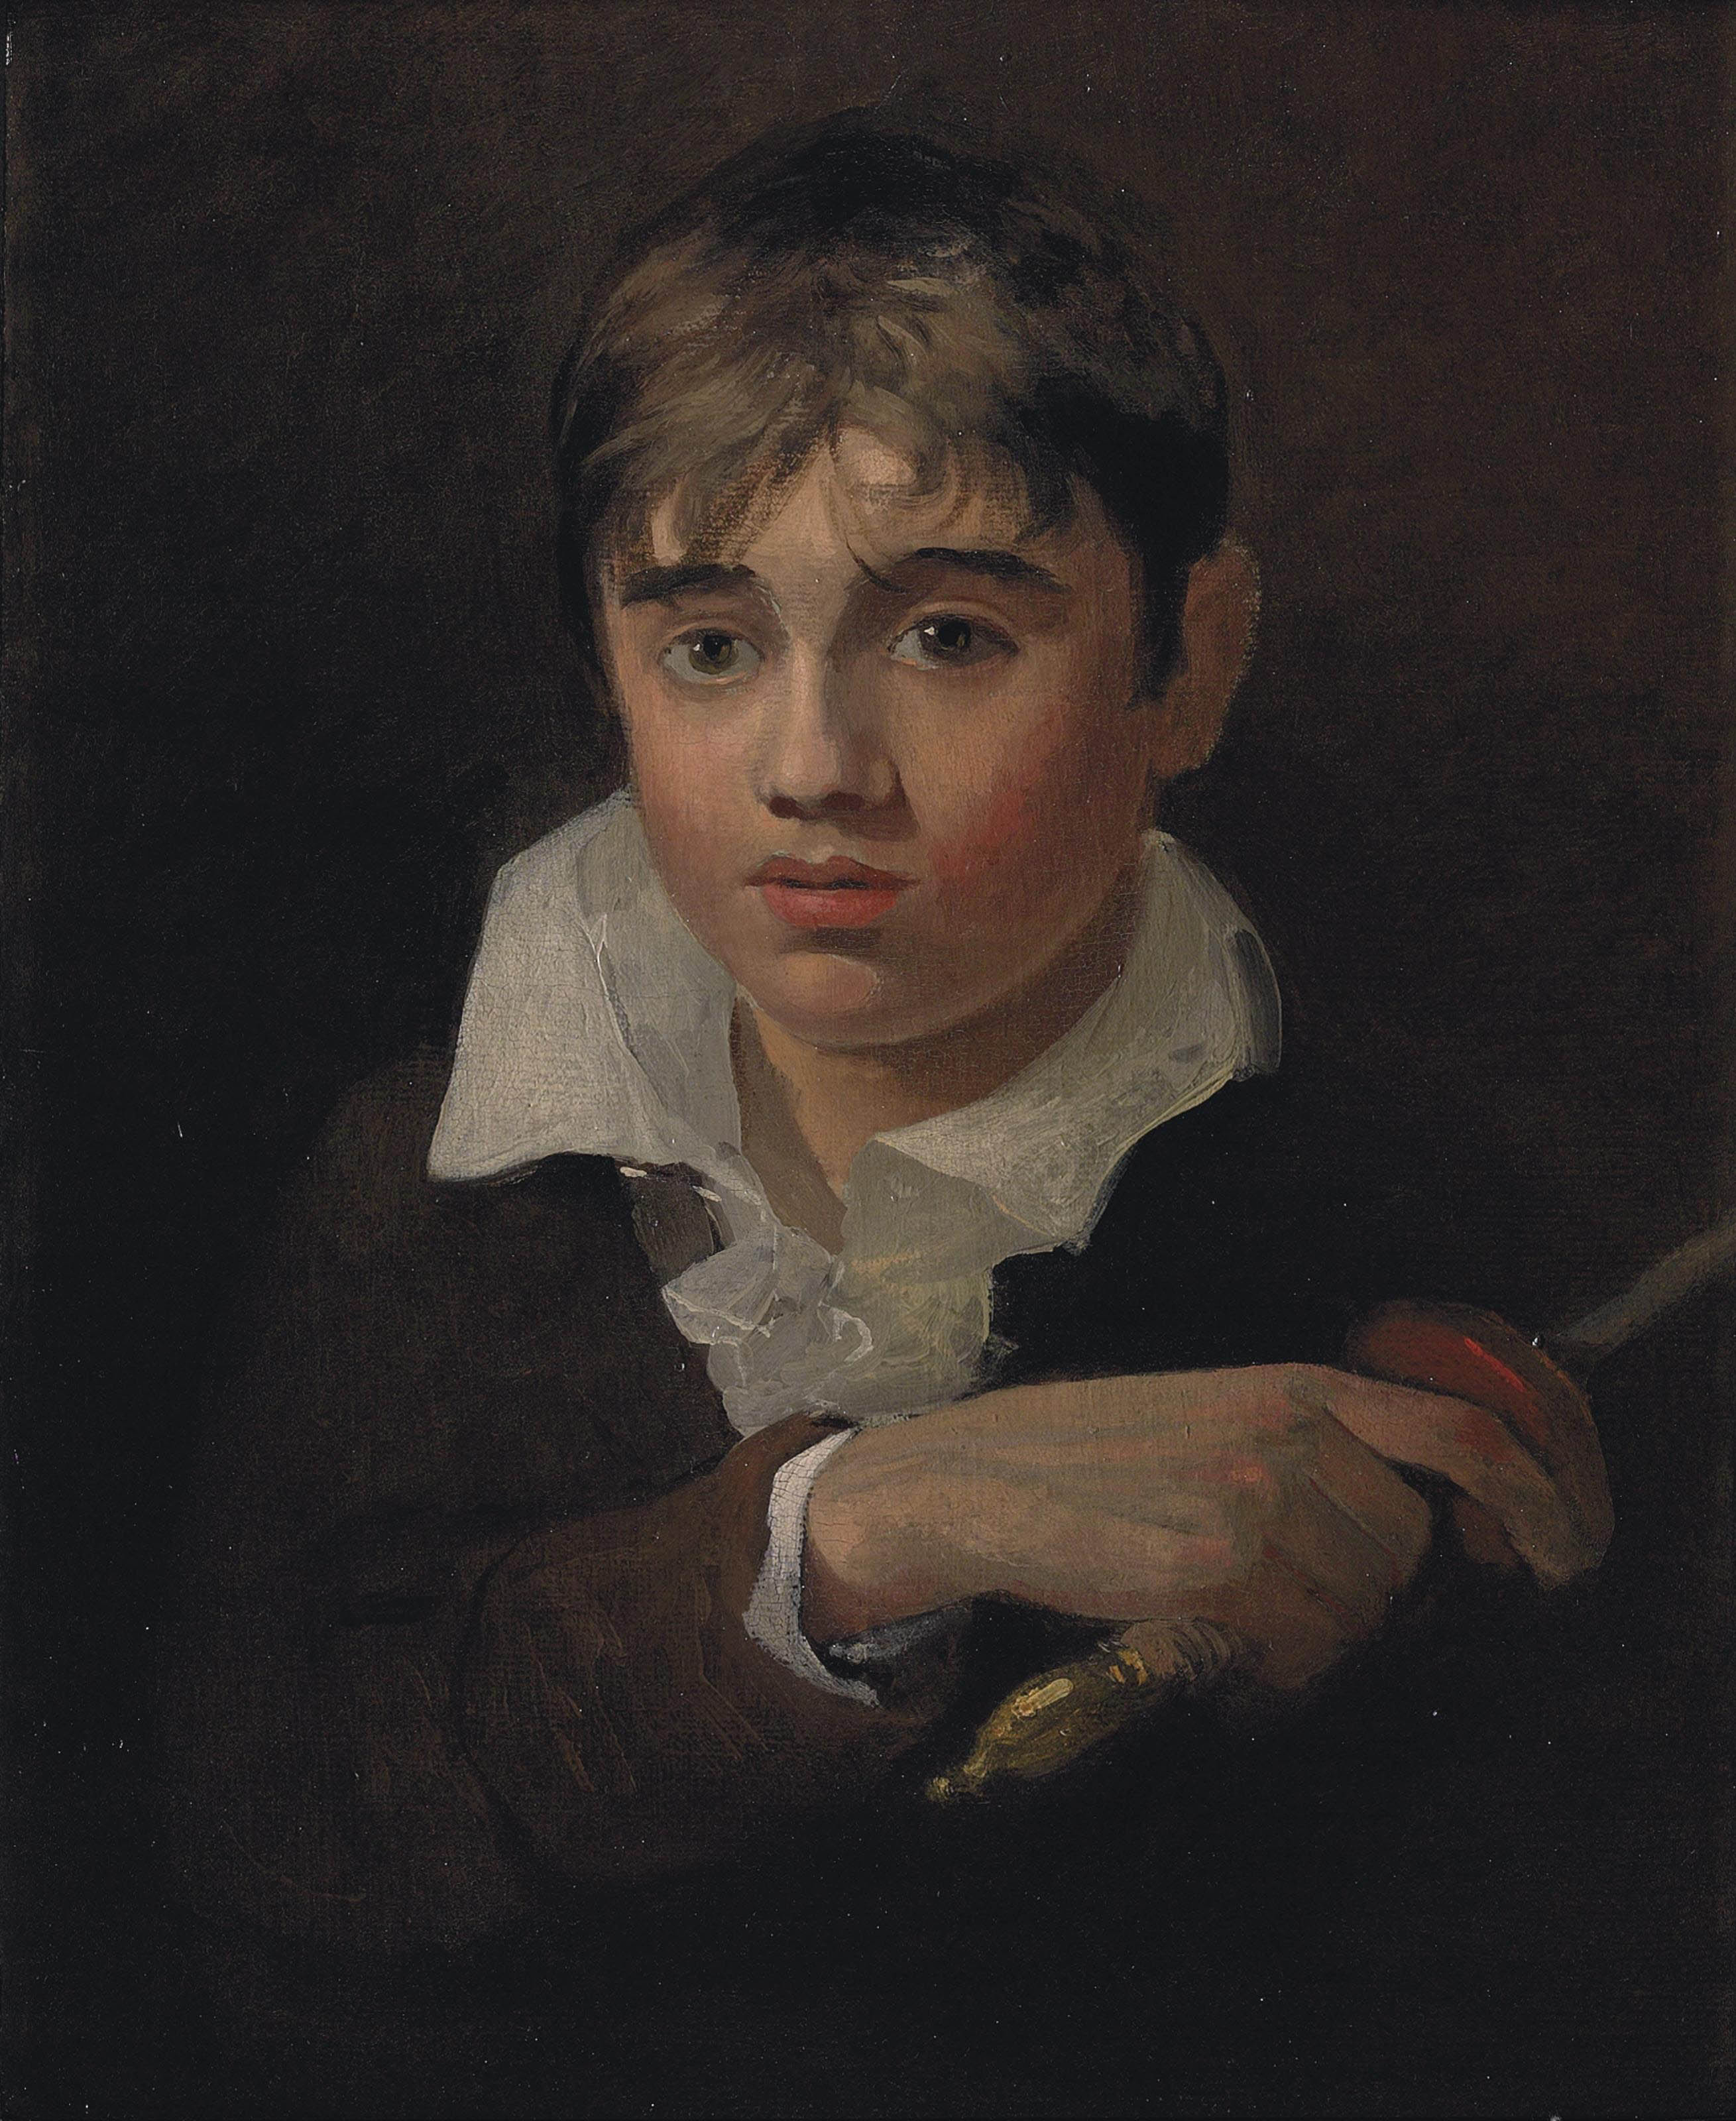 Portrait of a boy, believed to be the artist's youngest brother Henry, as 'Young Norval', bust-length, in a dark jacket and white shirt, holding a sword